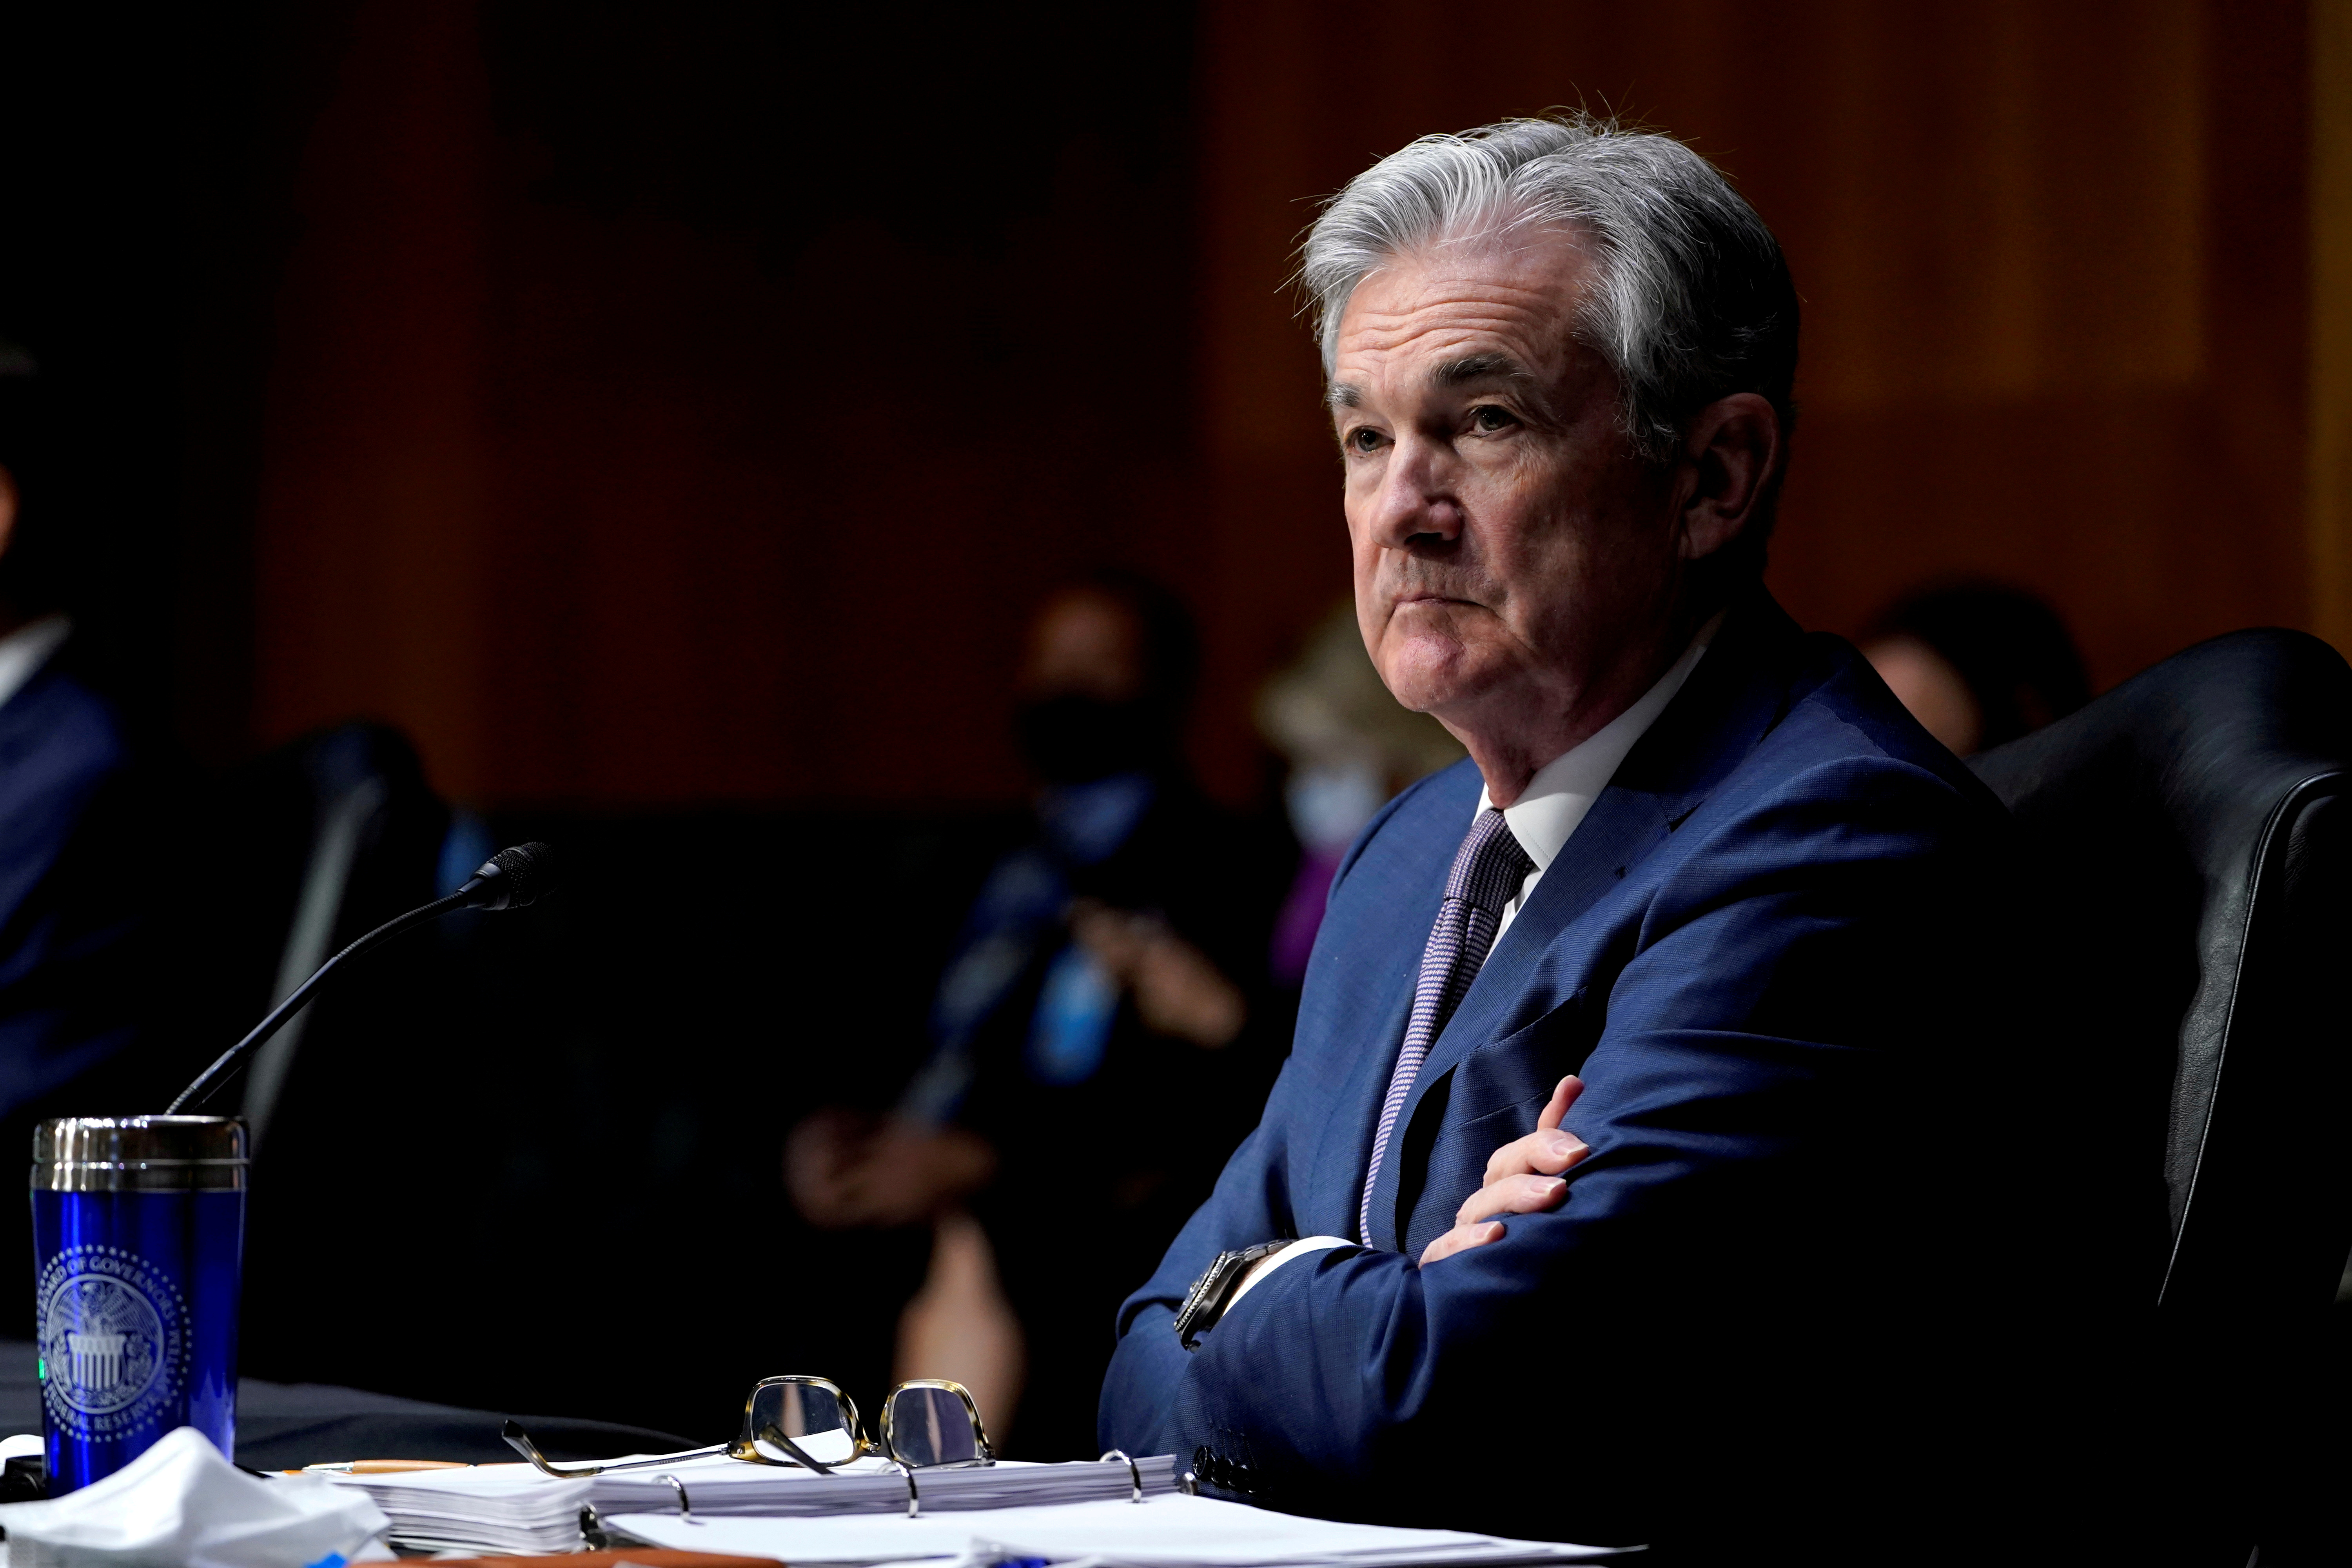 Chair of the Federal Reserve Jerome Powell listens during a Senate Banking Committee hearing on